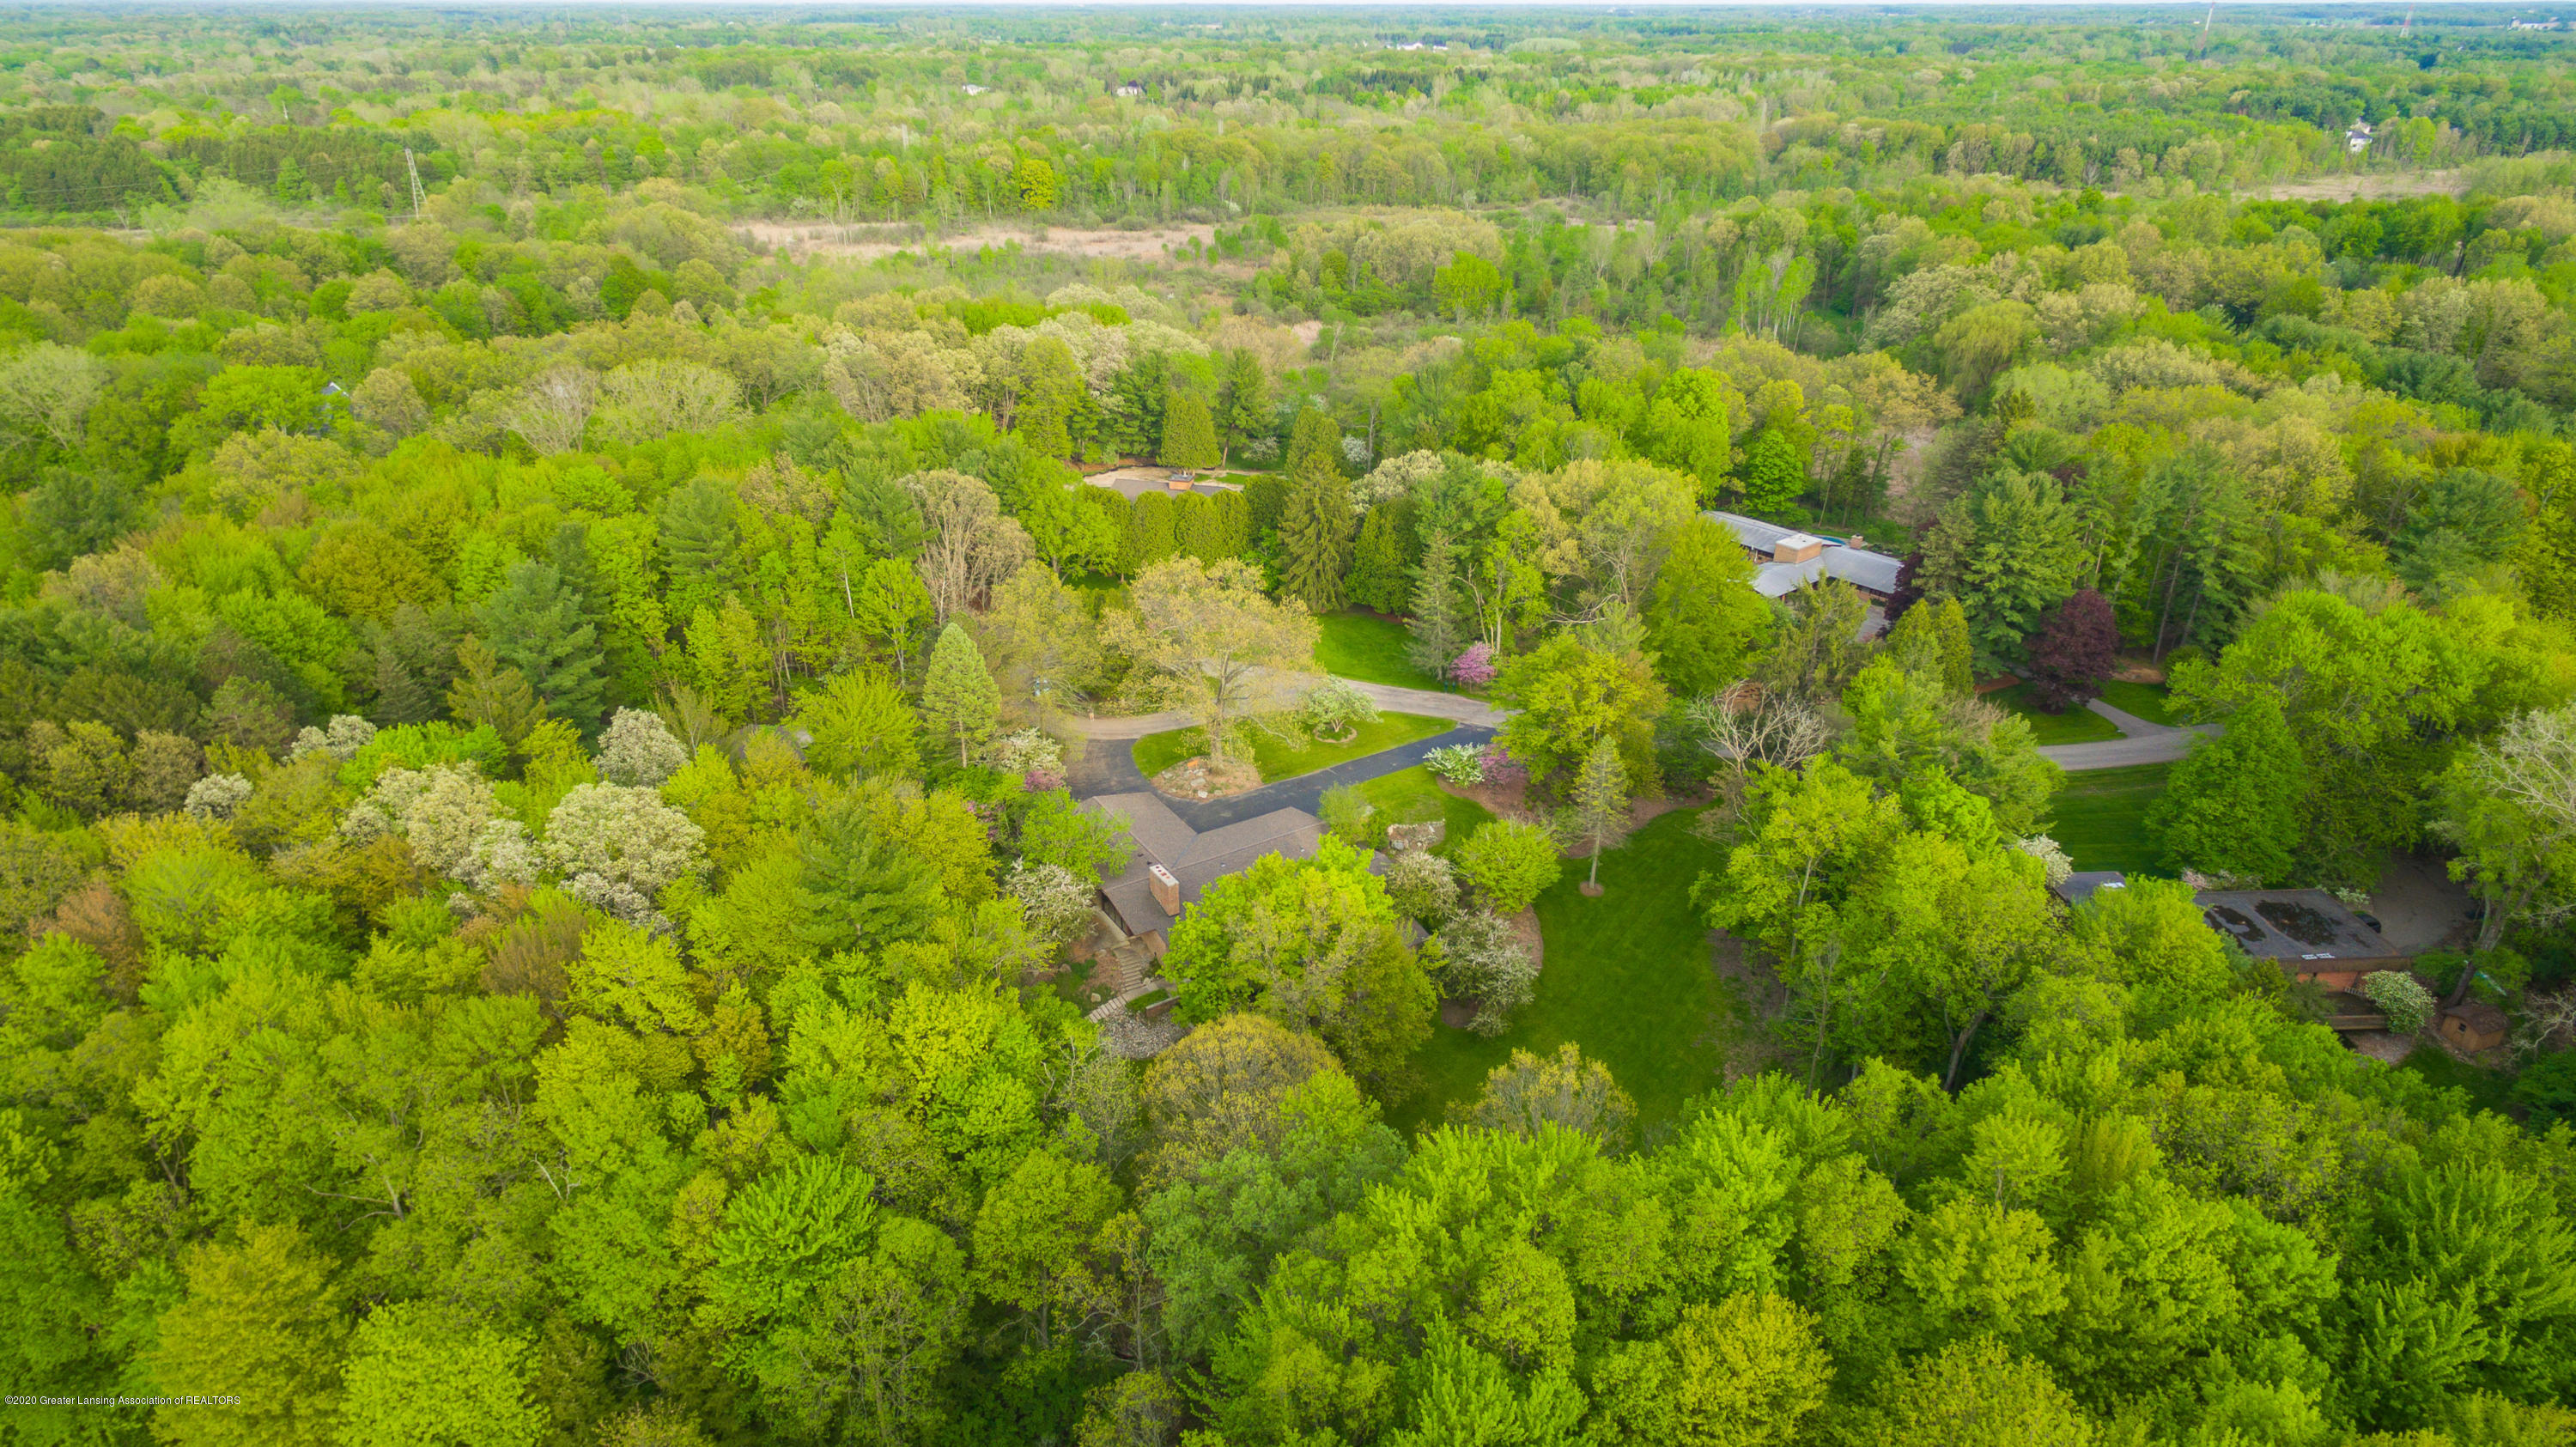 1172 Wrightwind Dr - Aerial View - 85